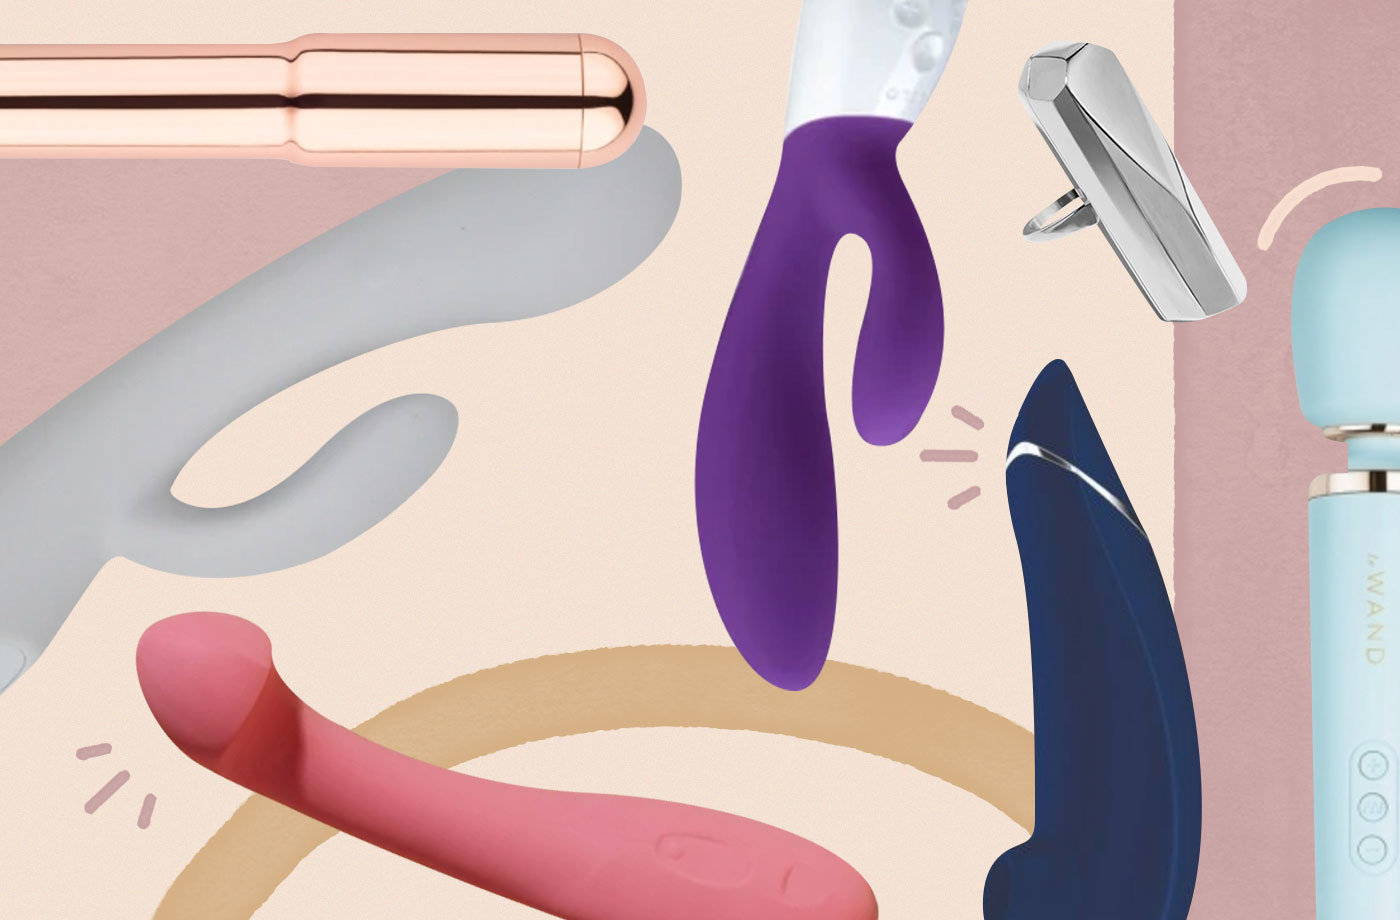 The Best Vibrators For 2021 - What's The Buzz?